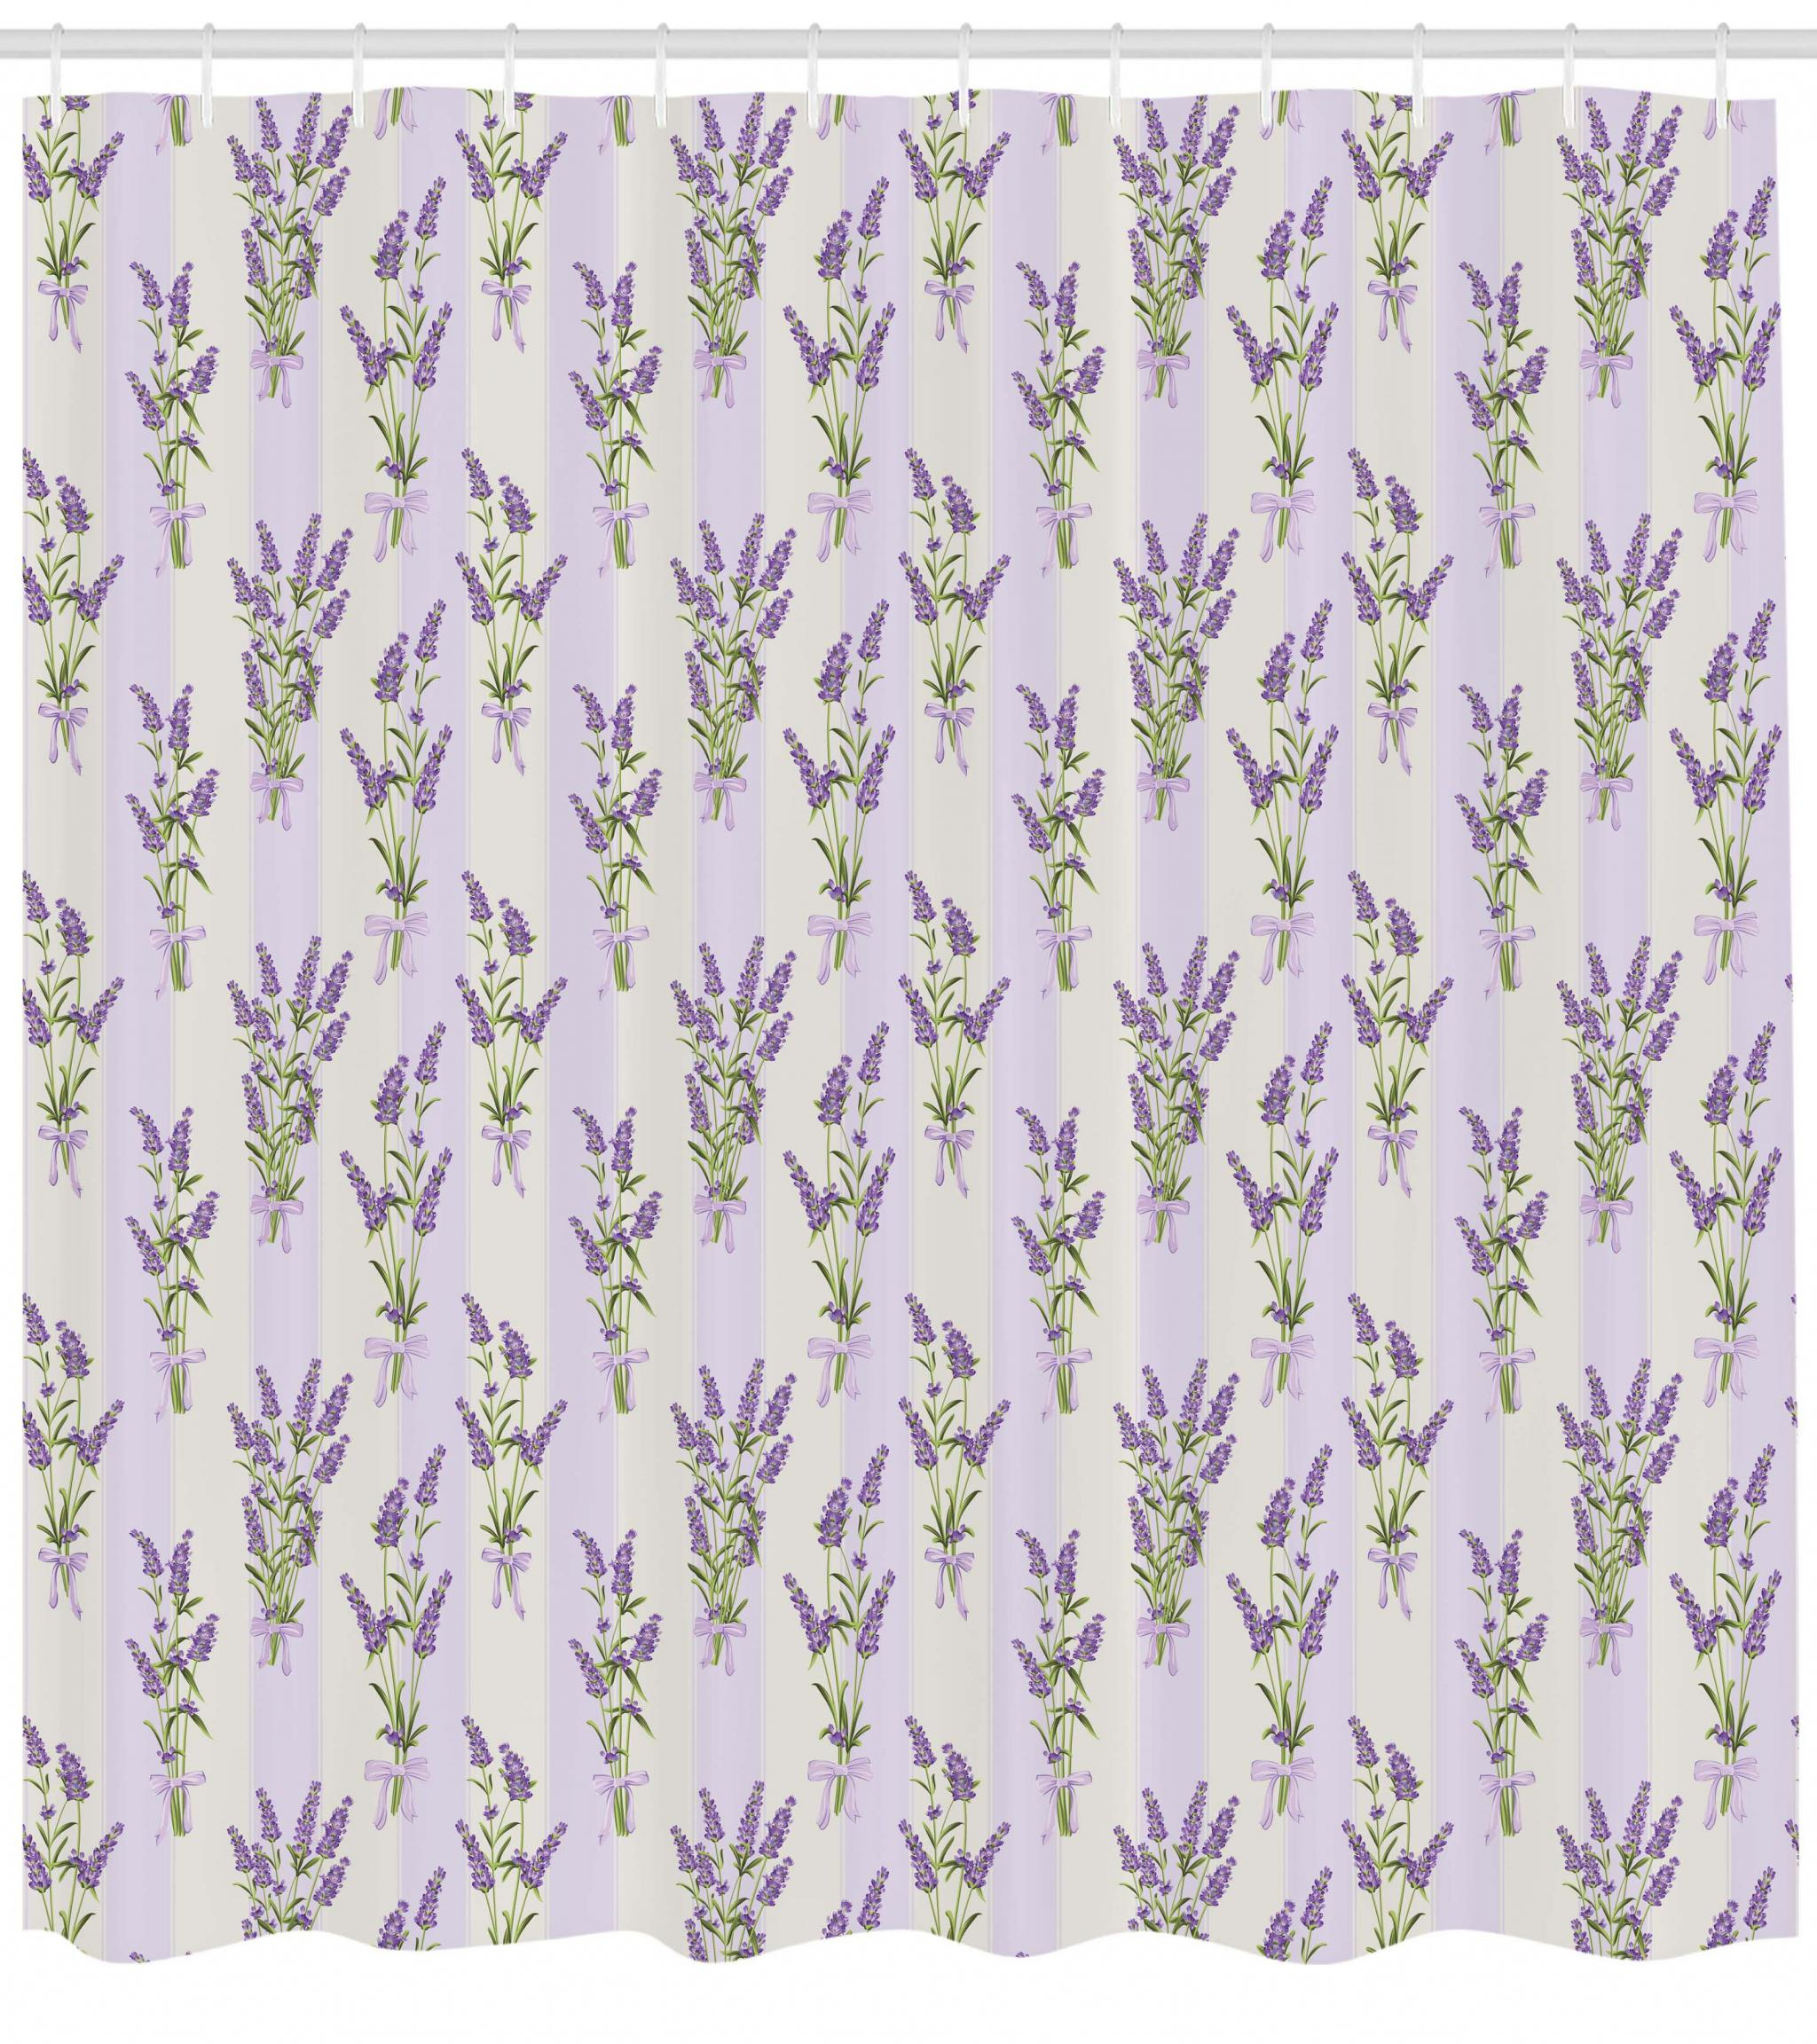 Lavender Shower Curtains Lavender Shower Curtain Stripes And Flowers With Ribbons Romantic Country Spring Season Inspired Design Art Fabric Bathroom Set With Hooks Purple